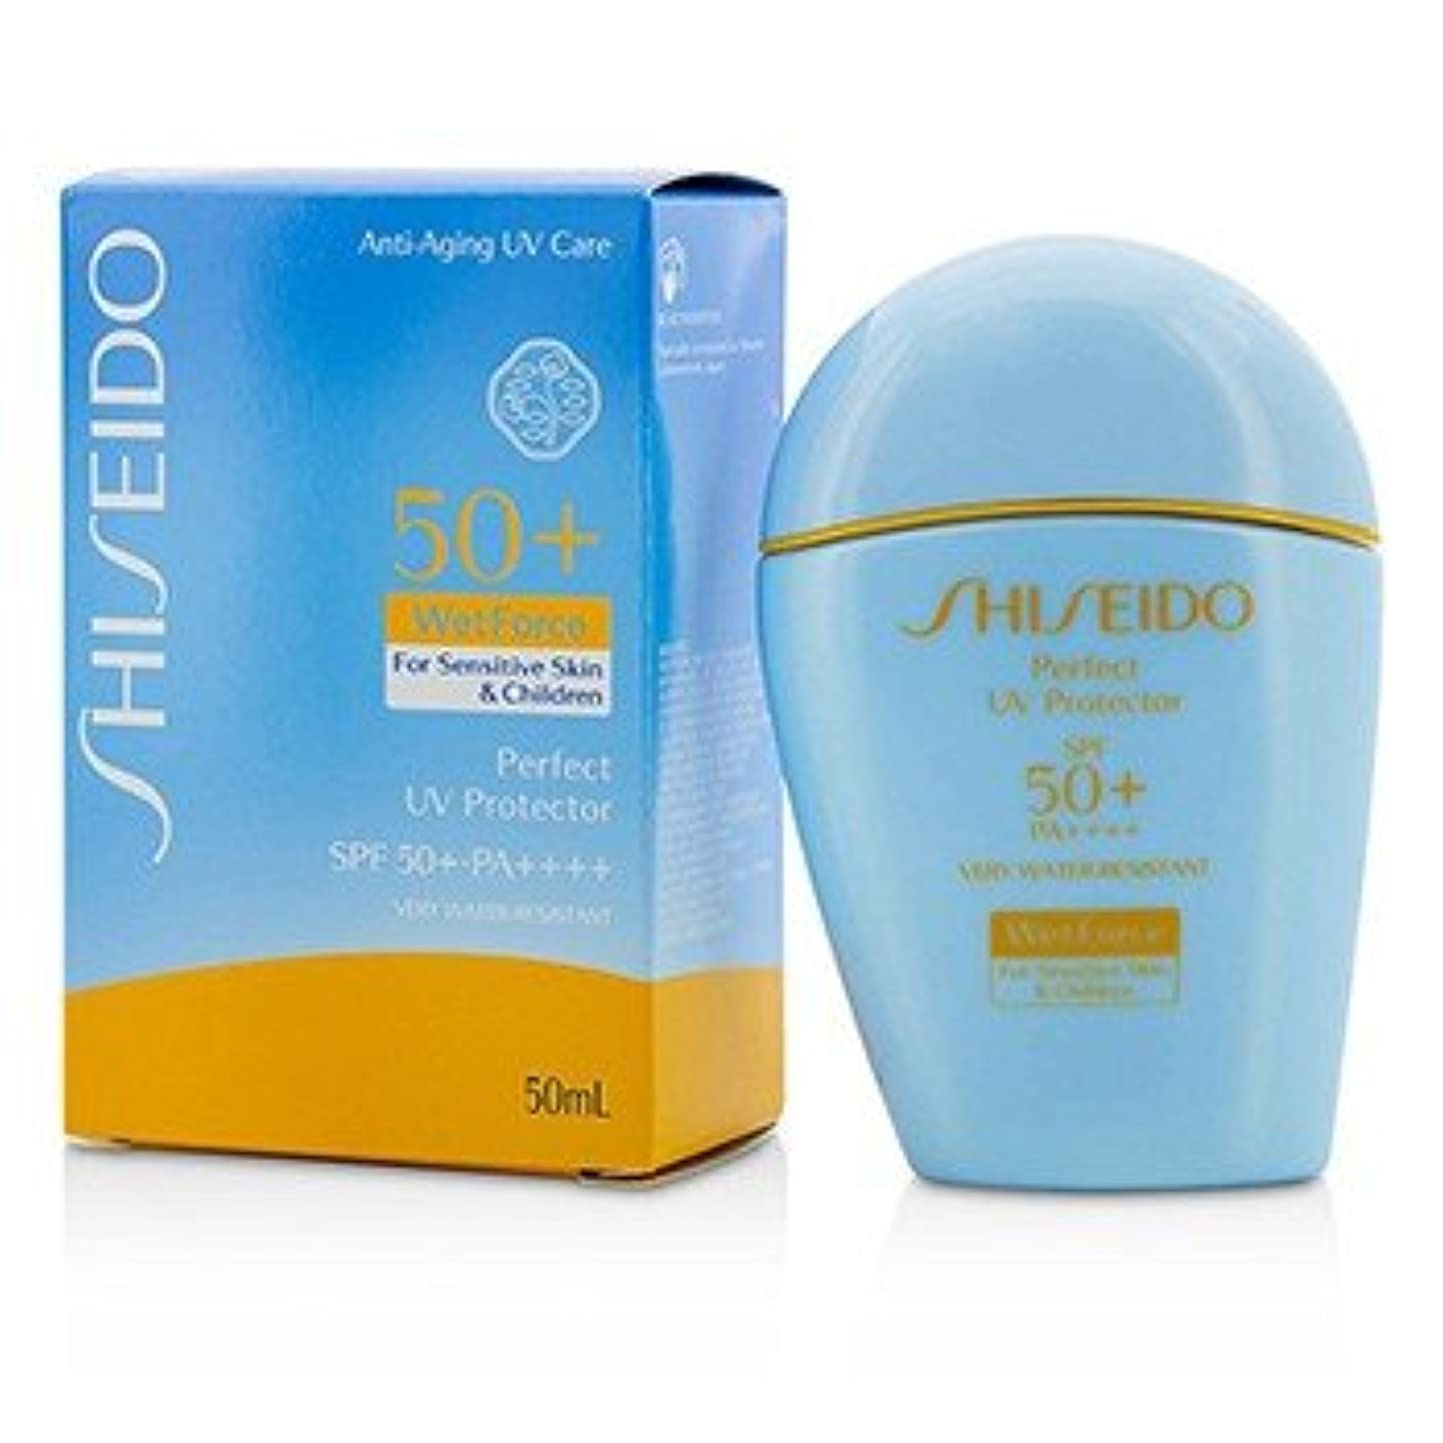 洗う進化メール[Shiseido] Perfect UV Protector S WetForce SPF 50+ PA++++ (For Sensitive Skin & Children) 50ml/1.7oz